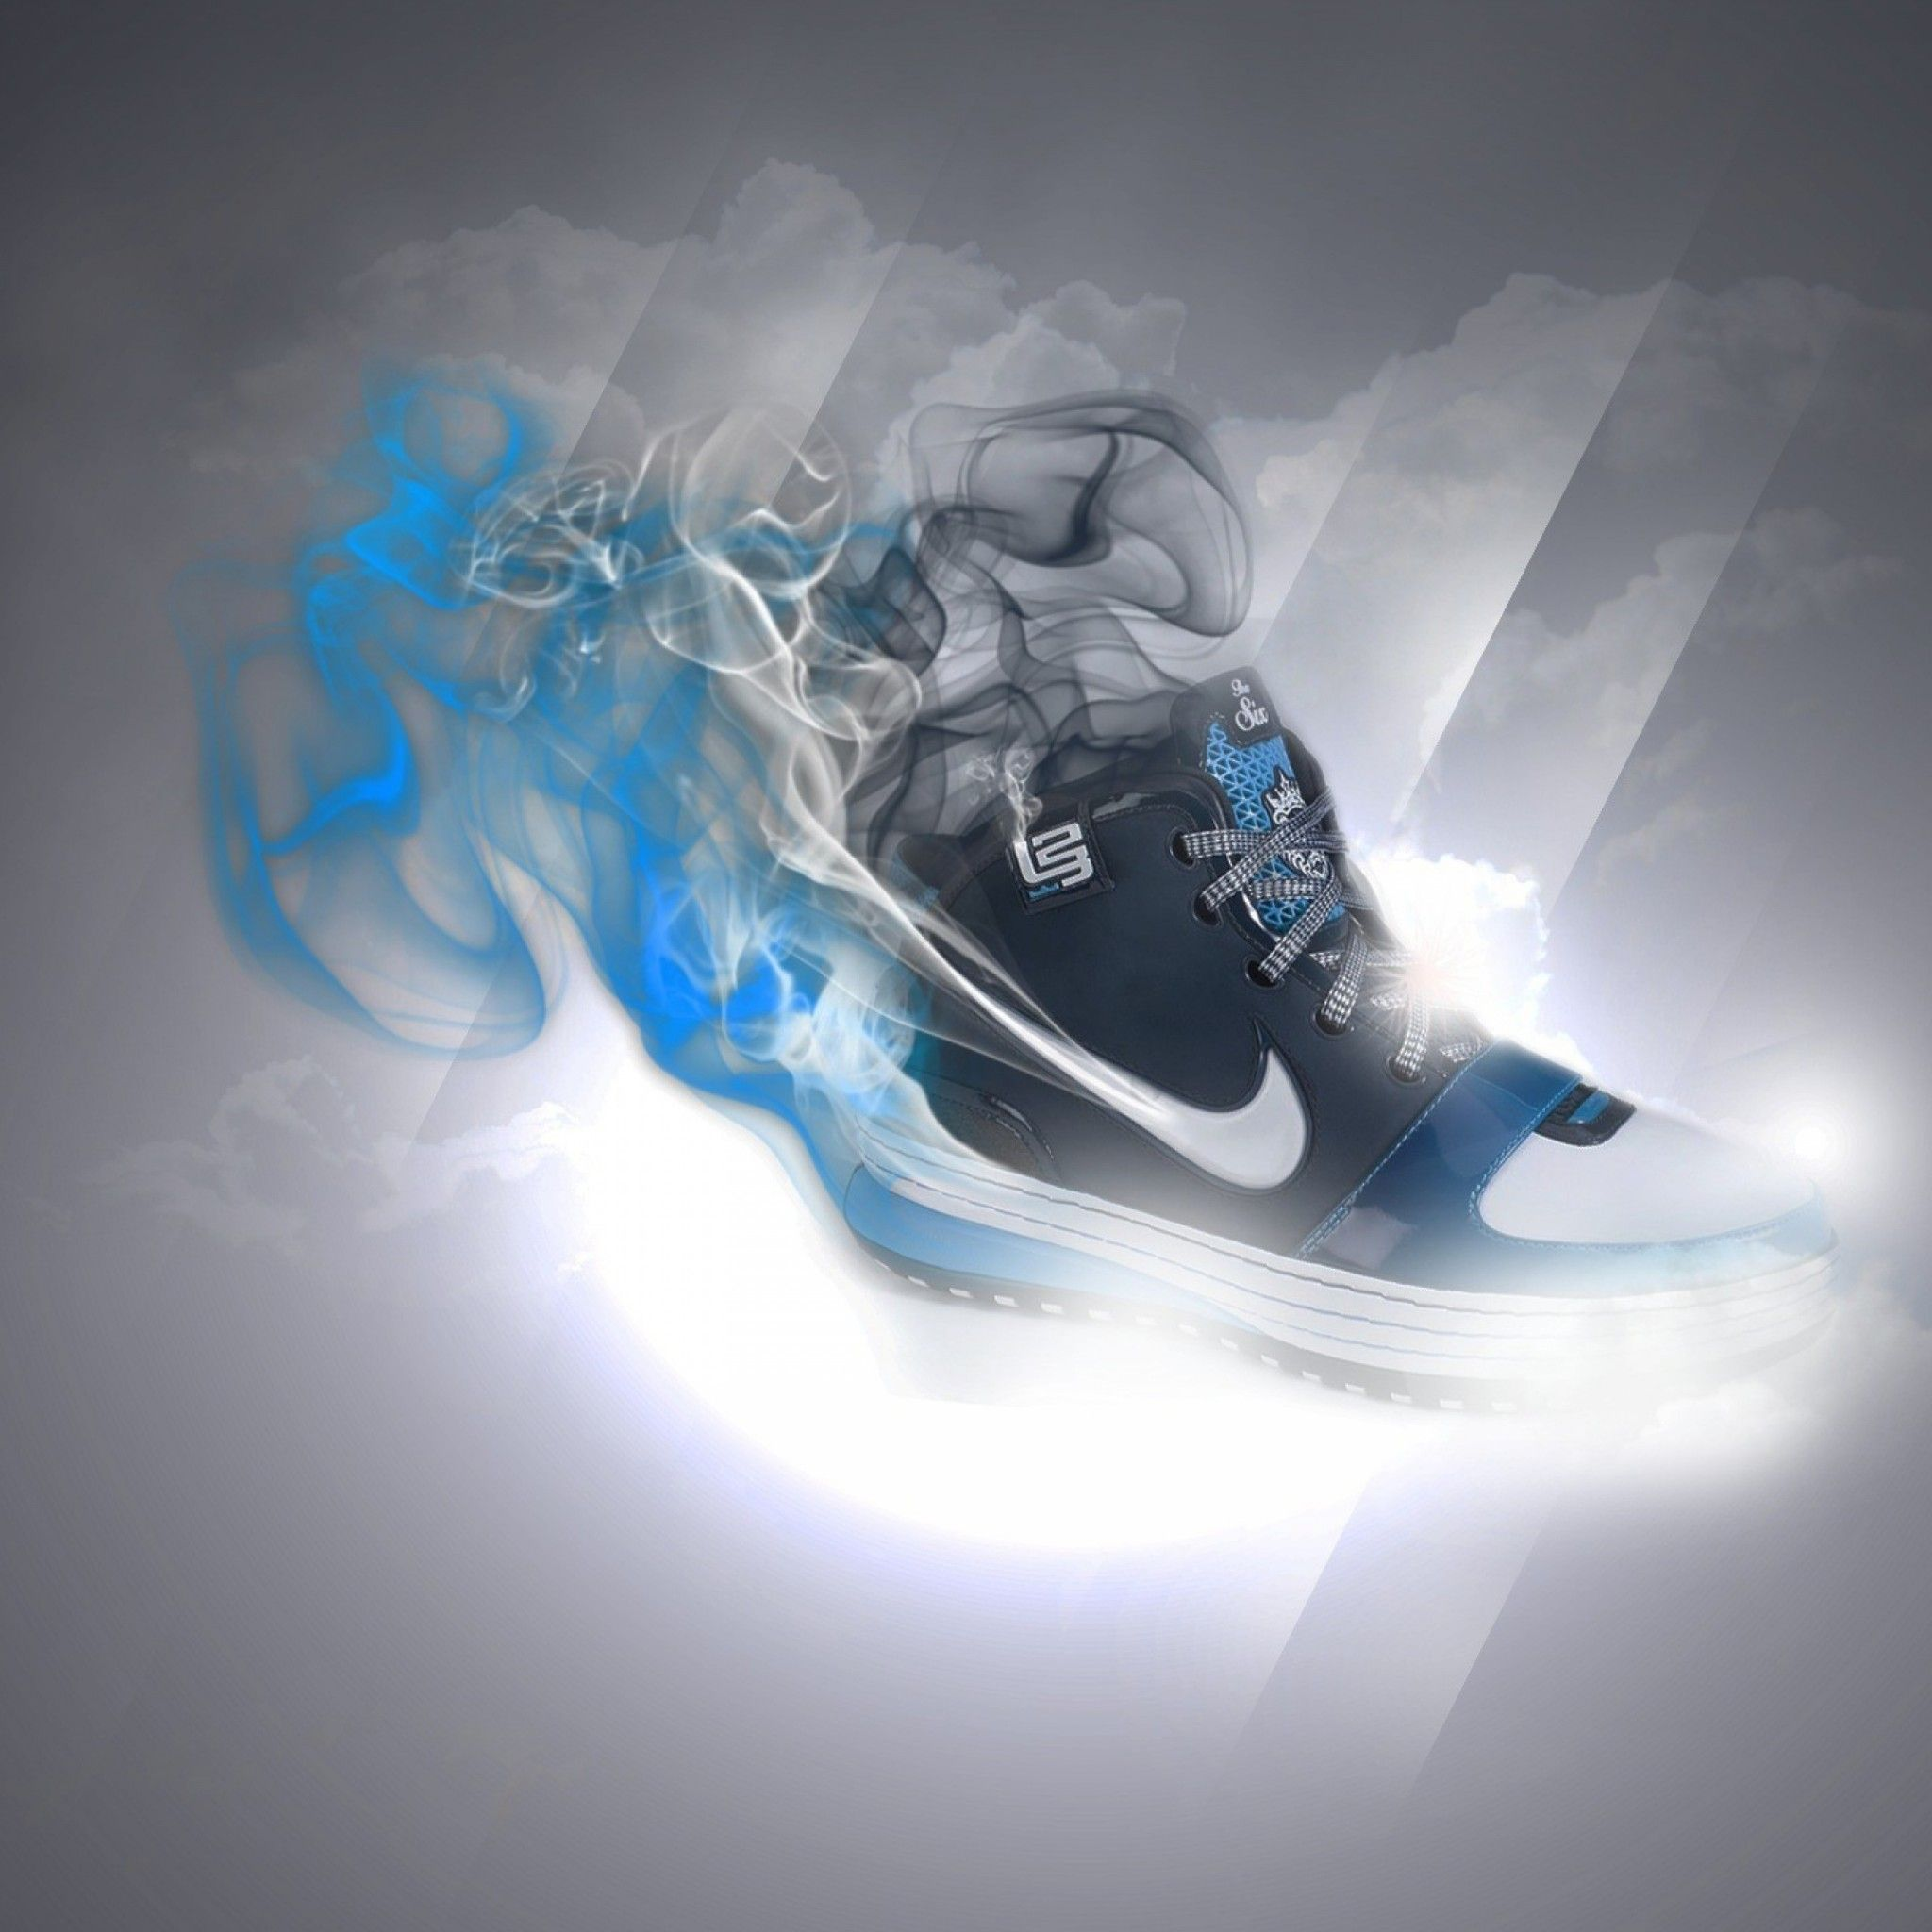 Nike Sneakers Apple Iphone 5s Hd Wallpapers Available For Free Download Nike Wallpaper Nike Shoes Wallpaper